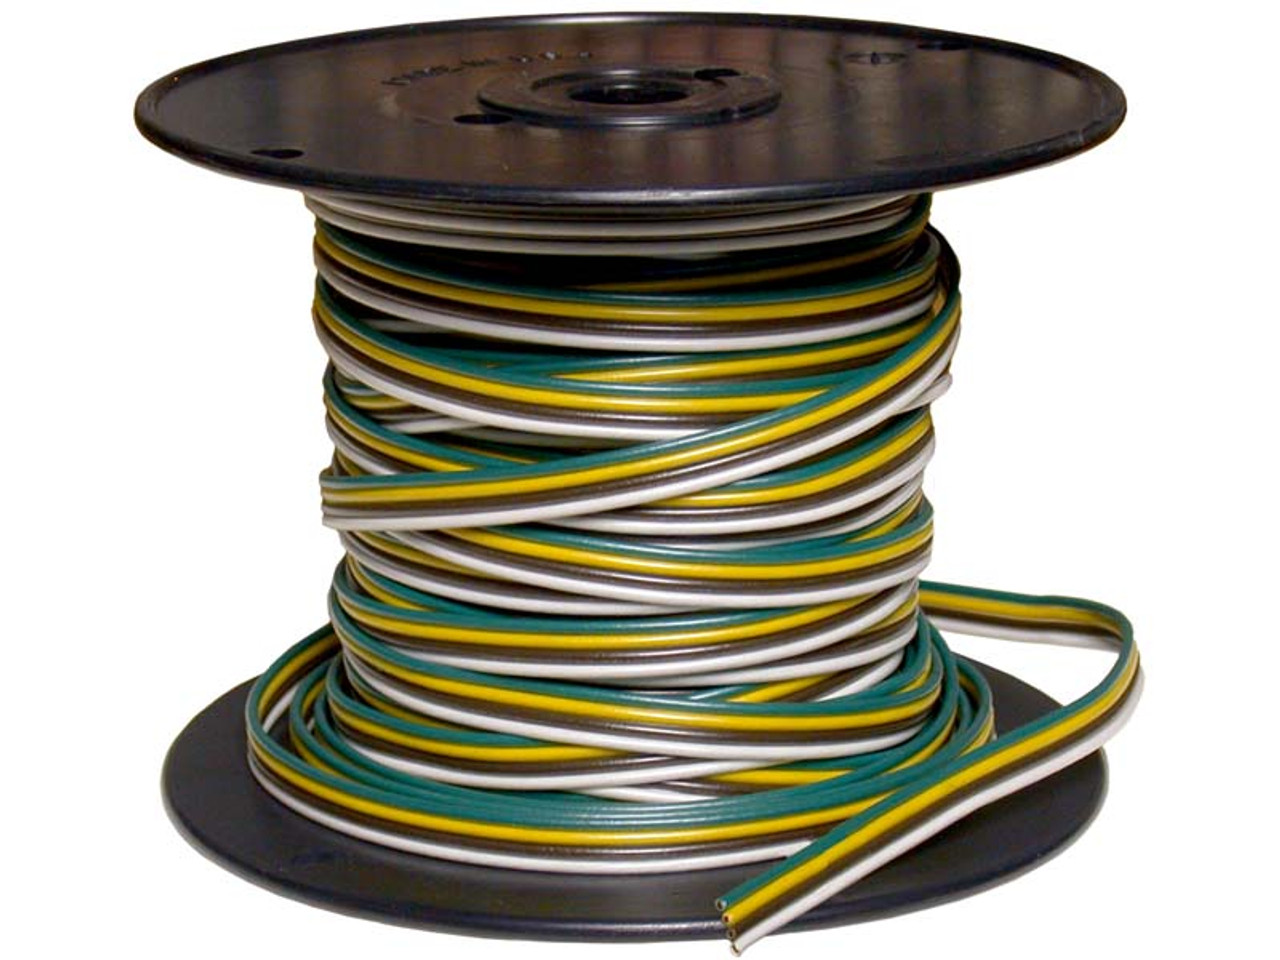 P4181 --- Parallel Trailer Cable, 4 Wire, 18 Gauge